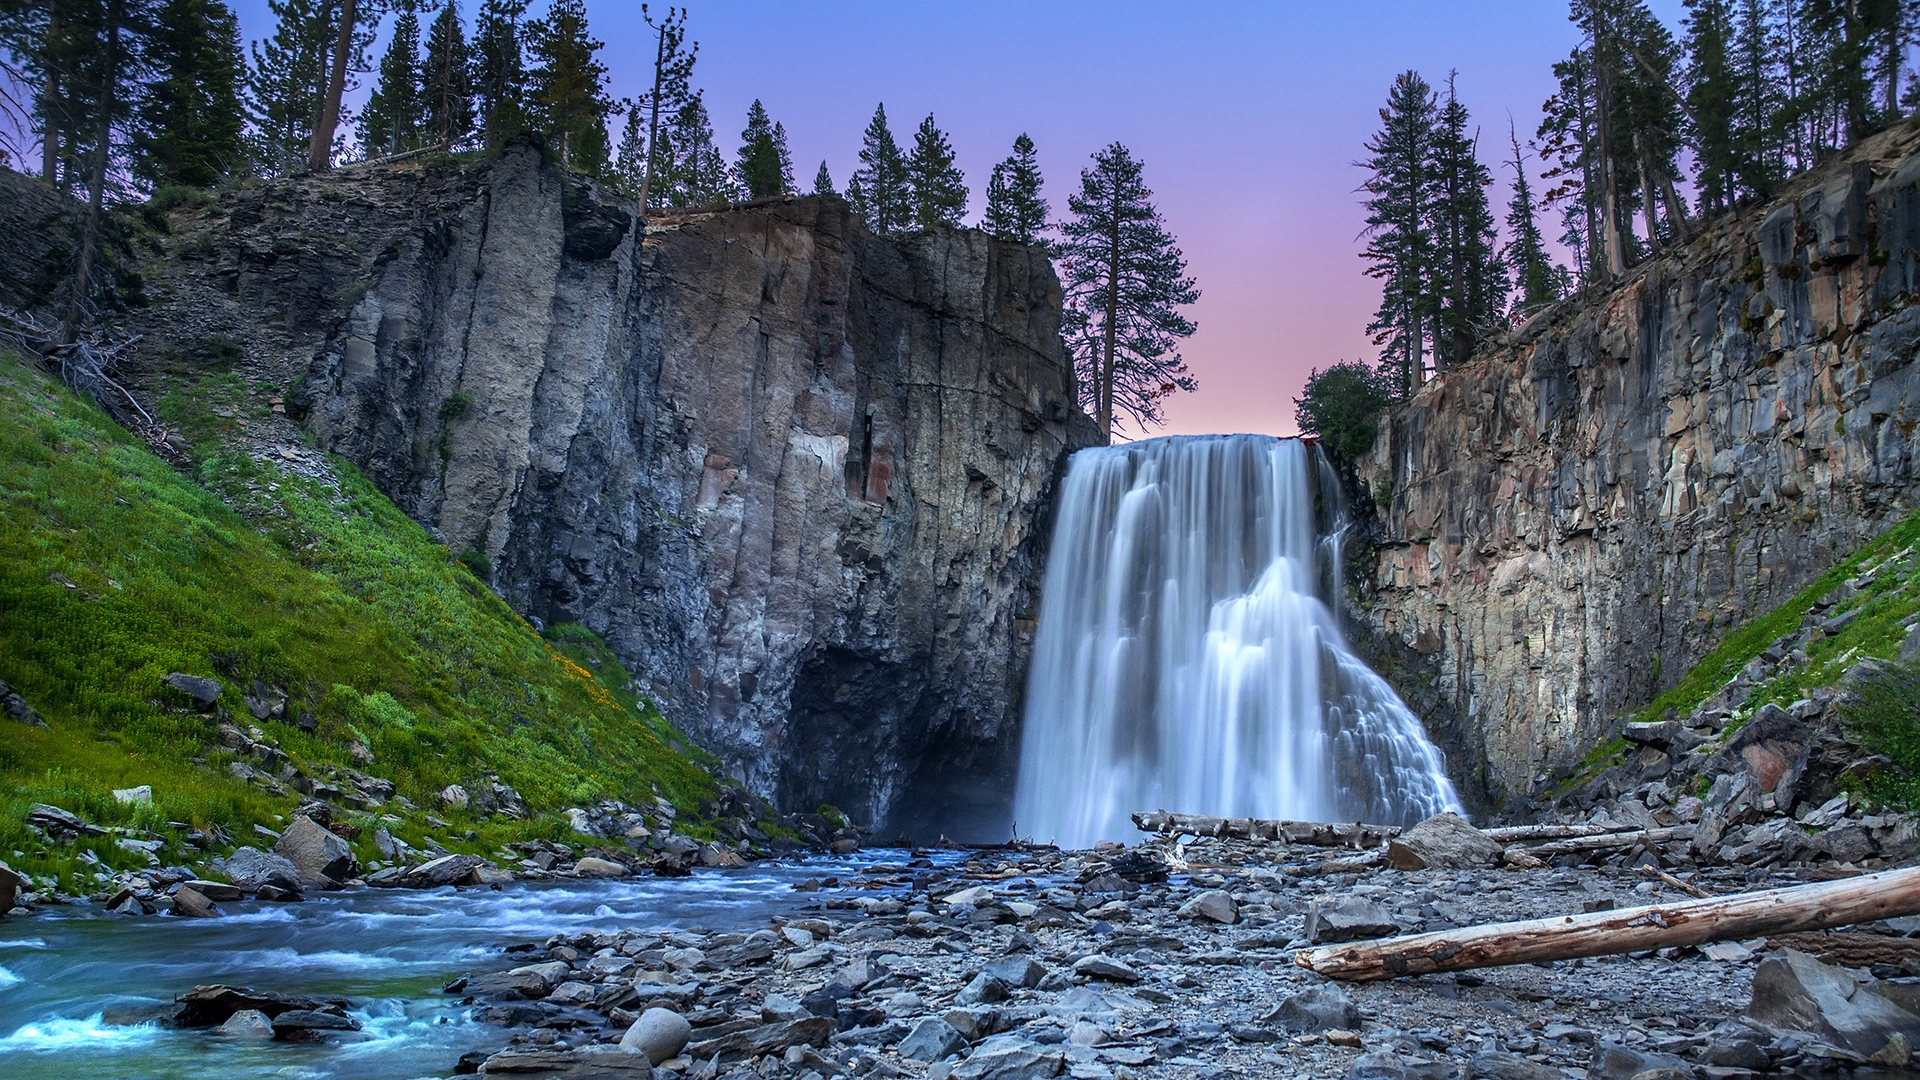 on,rocks,nature,shake,tilt,creation,falls,rock and roll,cascade,waterfall,universe,natural state,cliffs